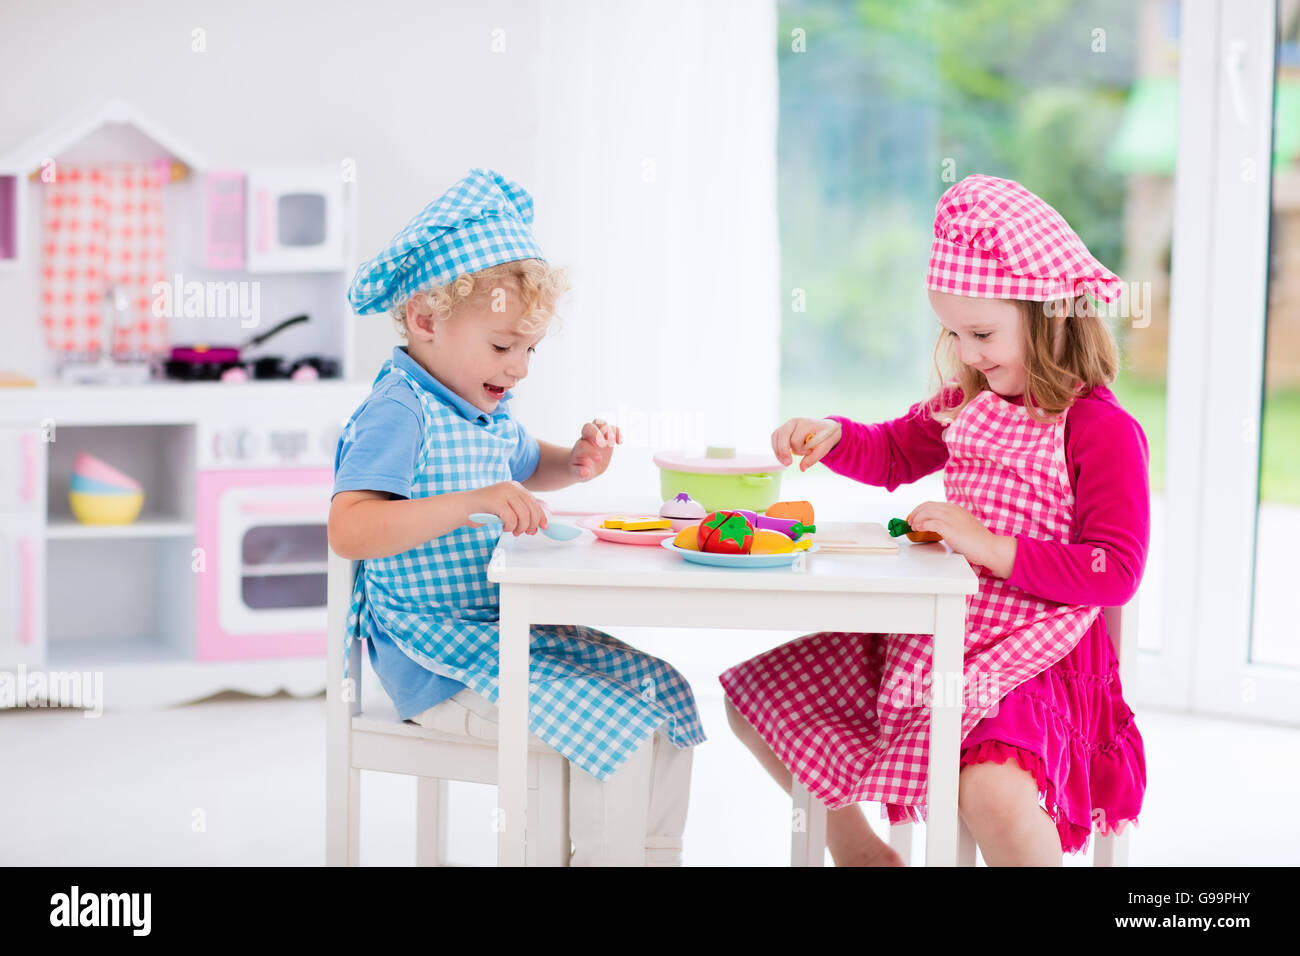 Little Girl And Boy In Chef Hat And Apron Cooking In Toy Kitchen.  Educational Toys For Young Children.